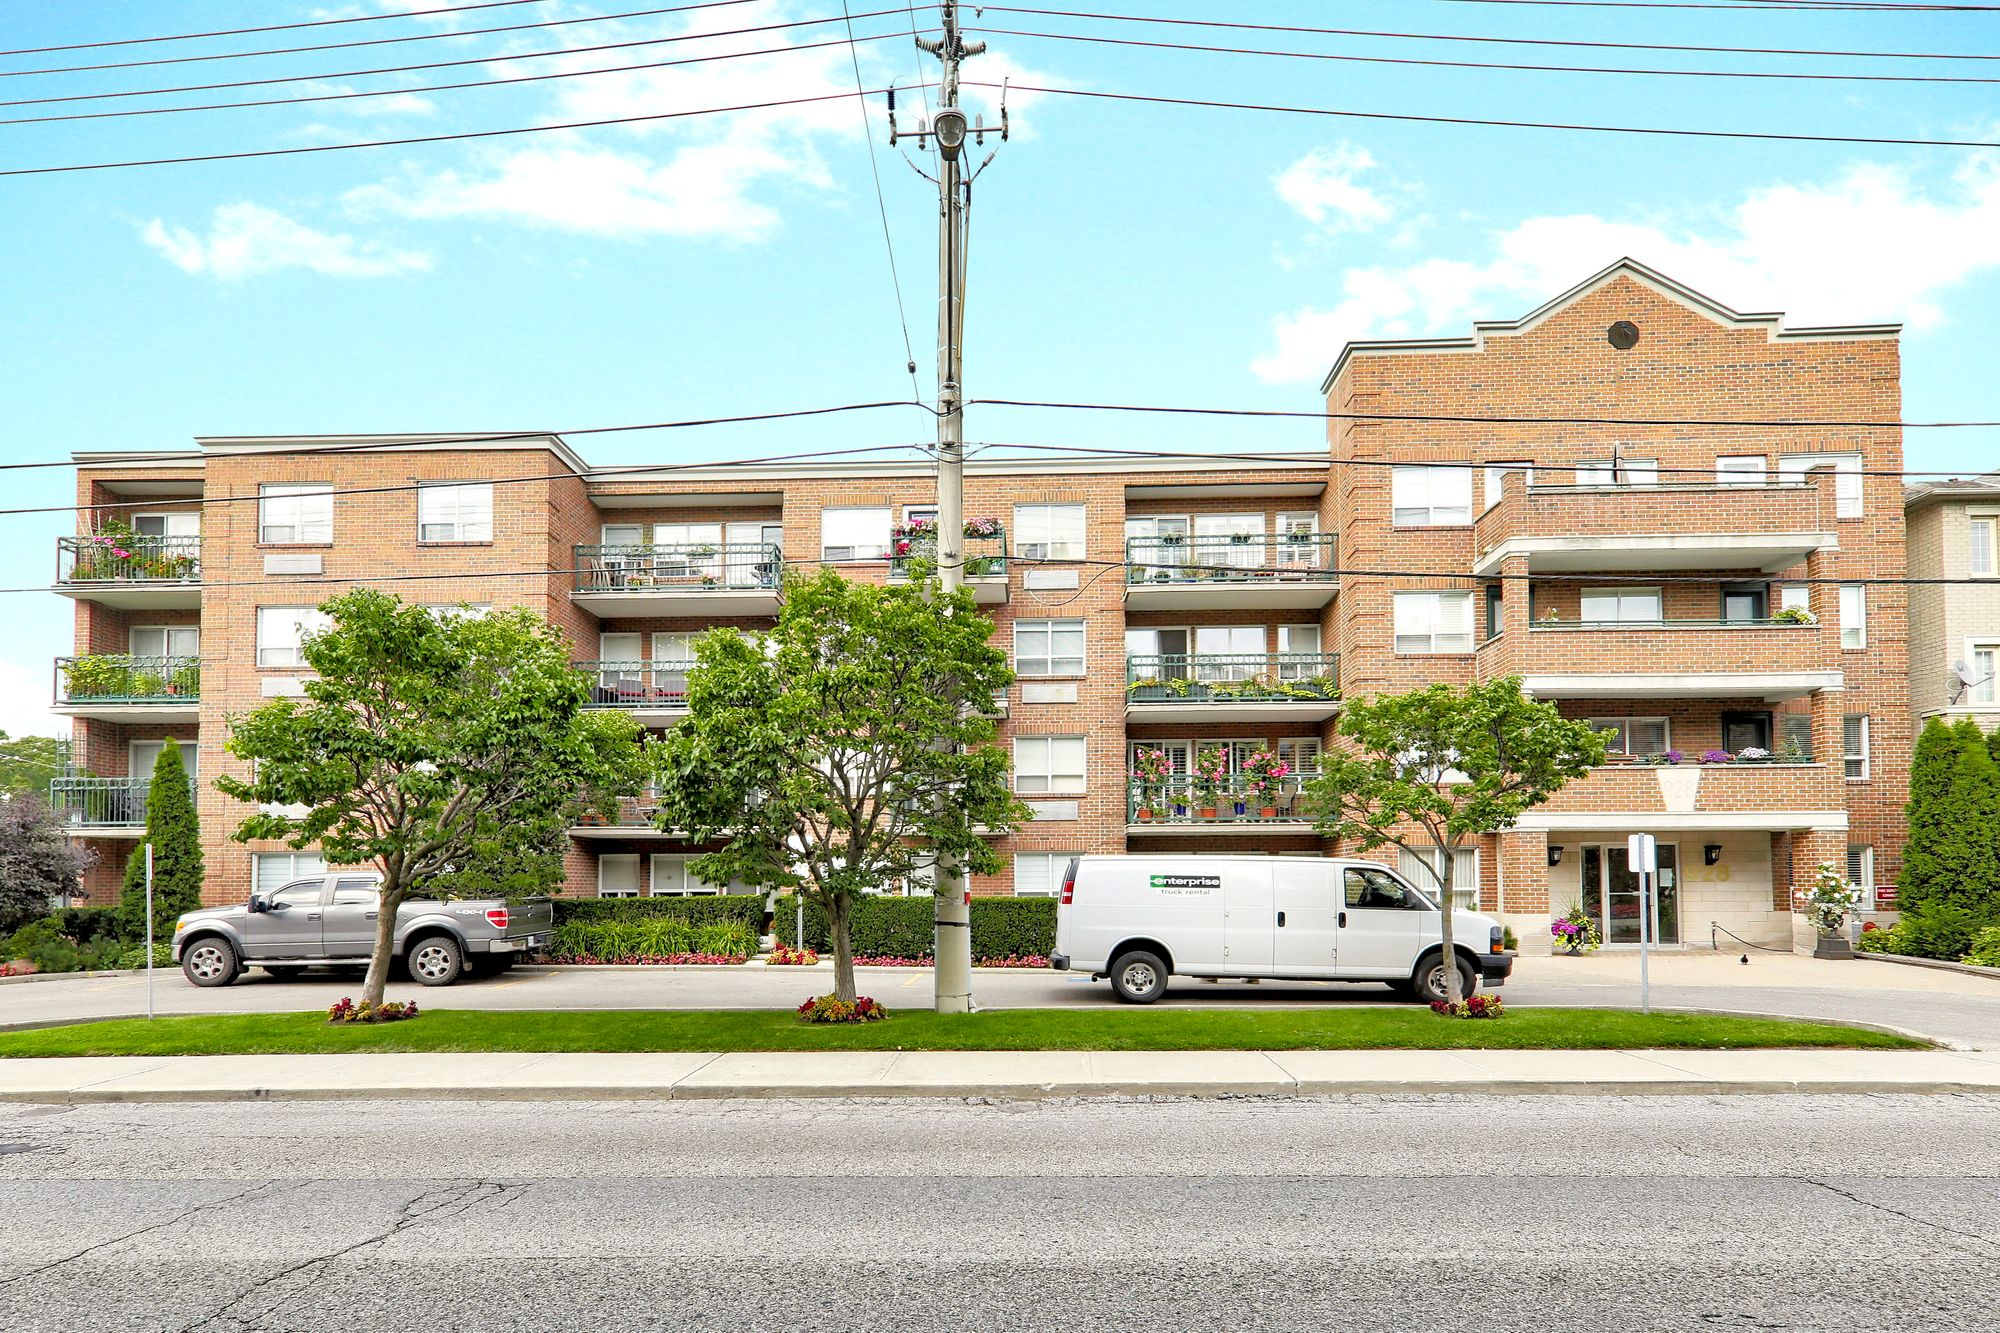 928 Millwood Rd. This condo townhouse at 928 Millwood Rd is located in  East York, Toronto - image #2 of 4 by Strata.ca